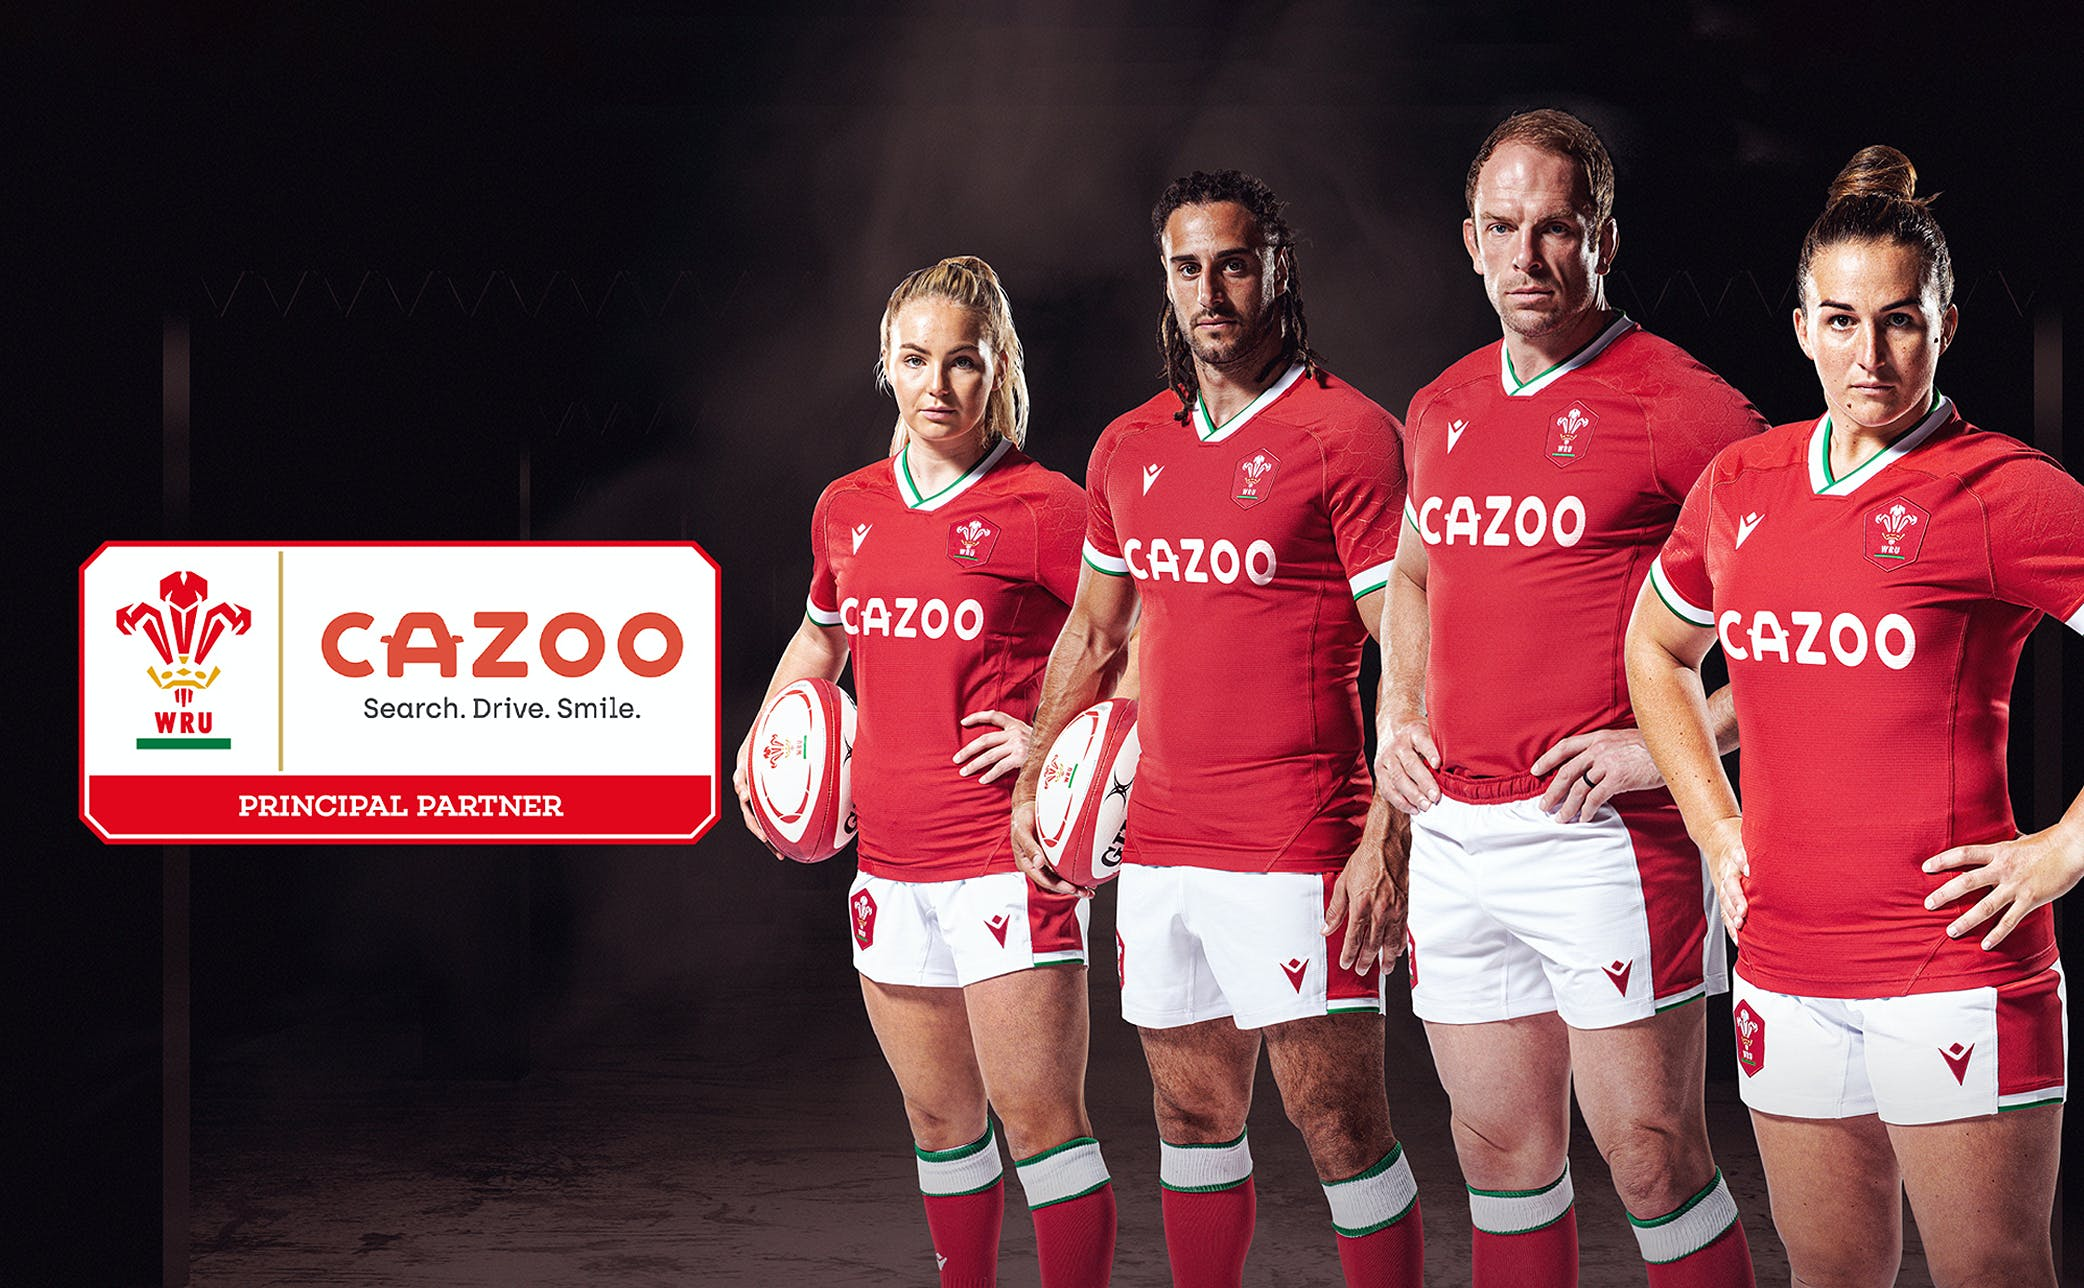 Welsh Rugby Union Sponsorship